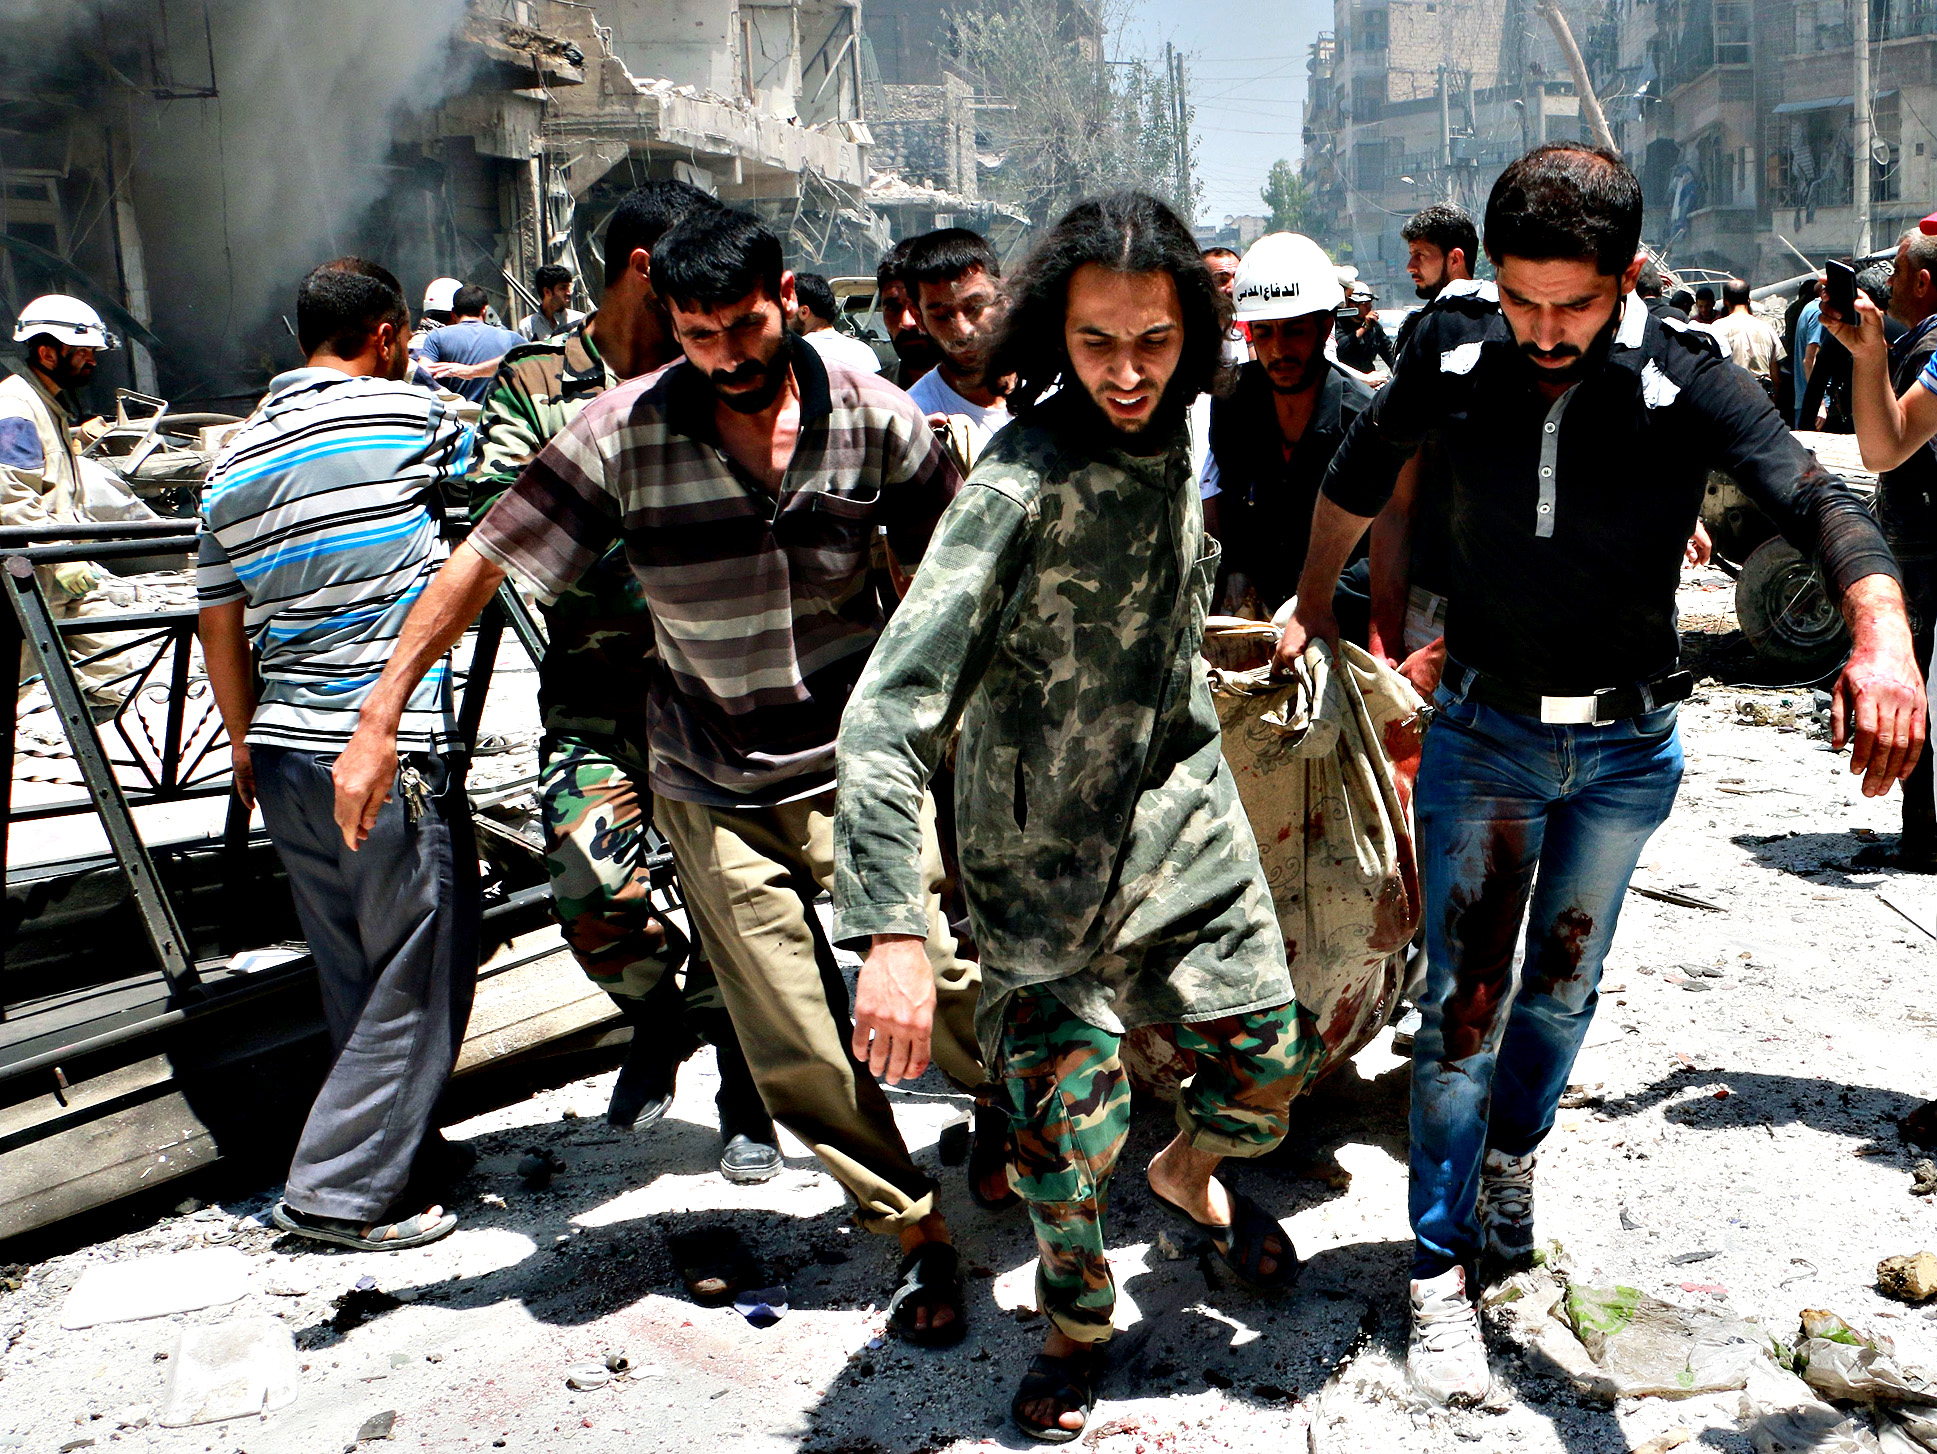 Rescuers carry a body after Syrian regime helicopters allegedly dropped barrel bombs on the Sukkari neighbourhood, an opposition-held district in the northern Syrian city of Aleppo, on June 16, 2014,  killing at least 20 people, including several children, according to the Syrian Observatory for Human Rights.